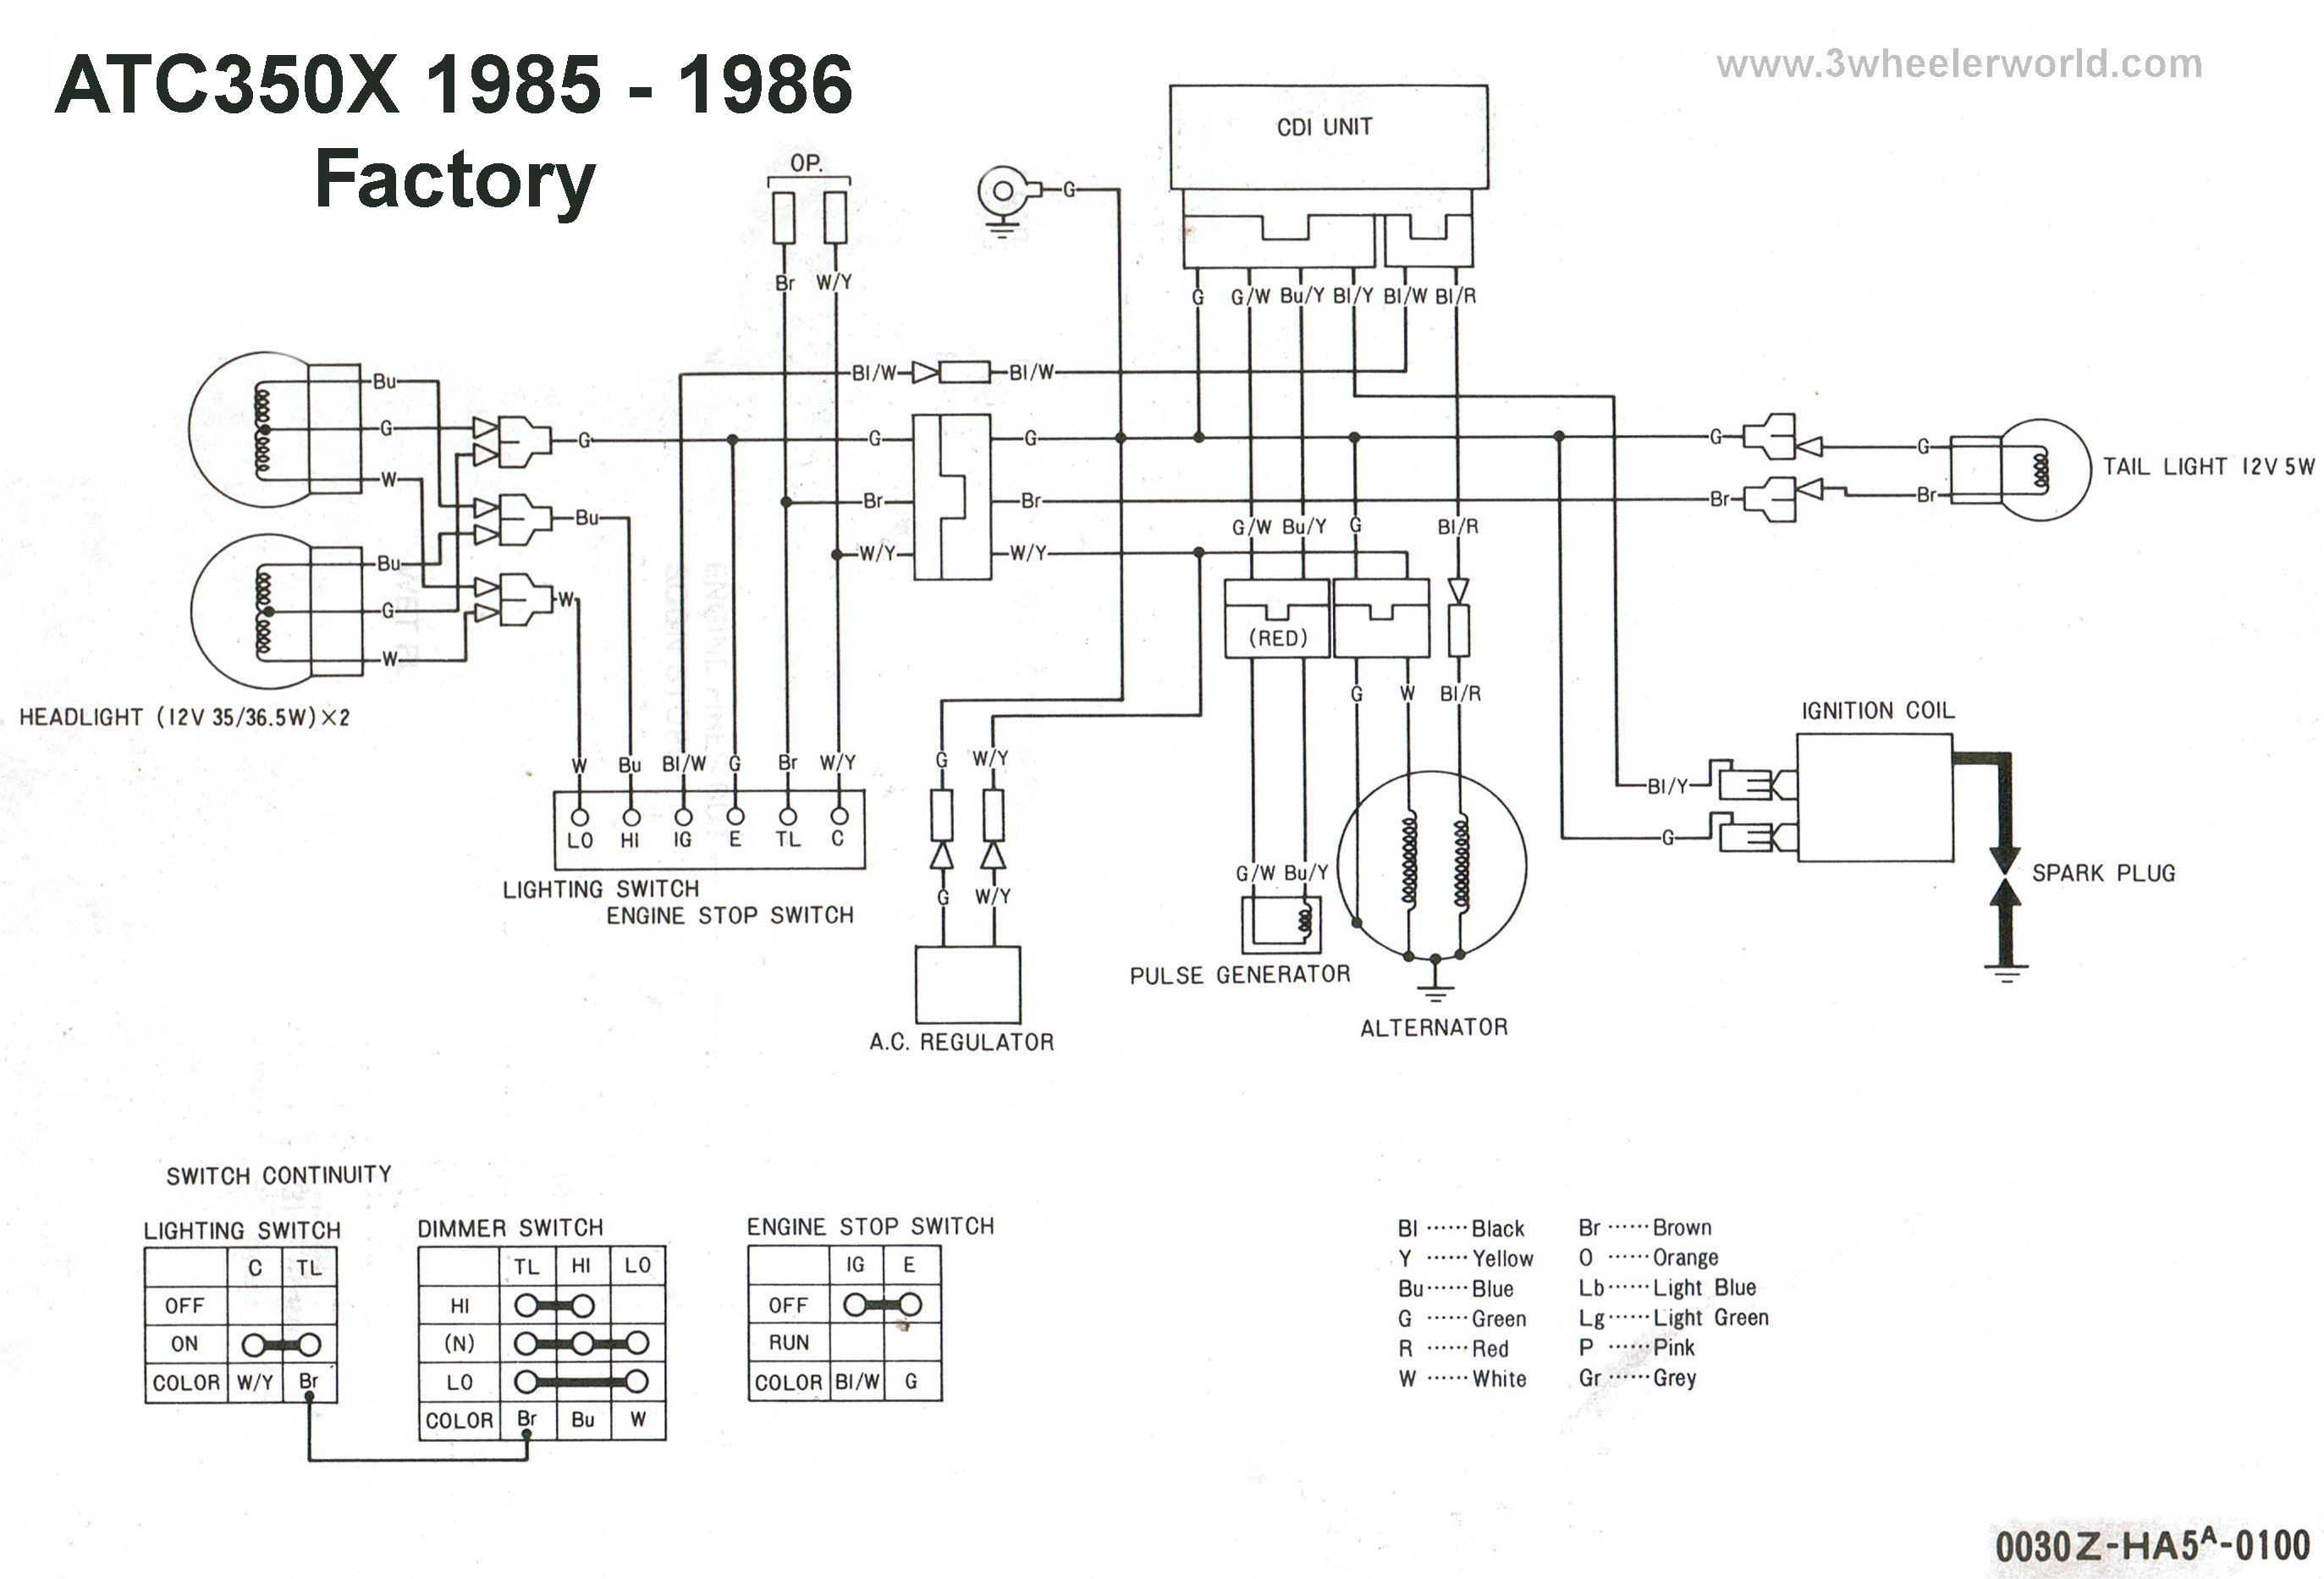 ATC350Xx85Thru86 98 honda fourtrax diagrams wiring diagram simonand trx350 wiring diagram 1987 at panicattacktreatment.co